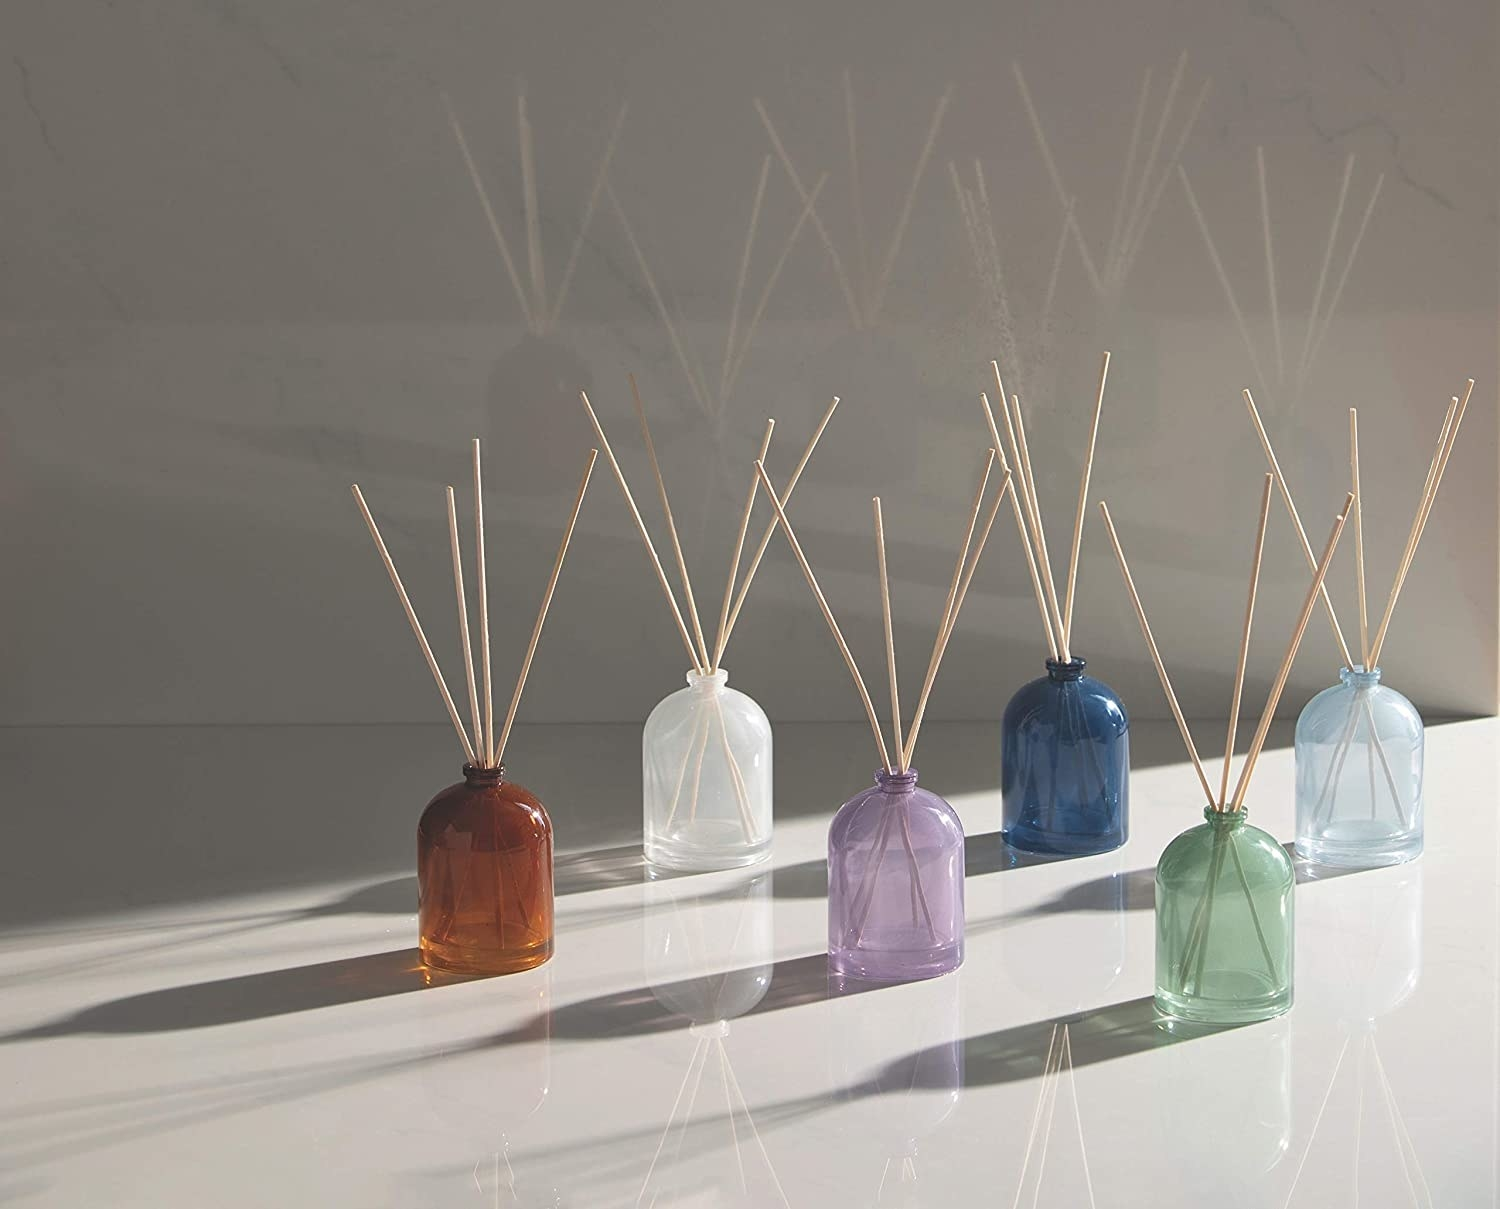 Six small glass bottles with fragrance sticks inside each